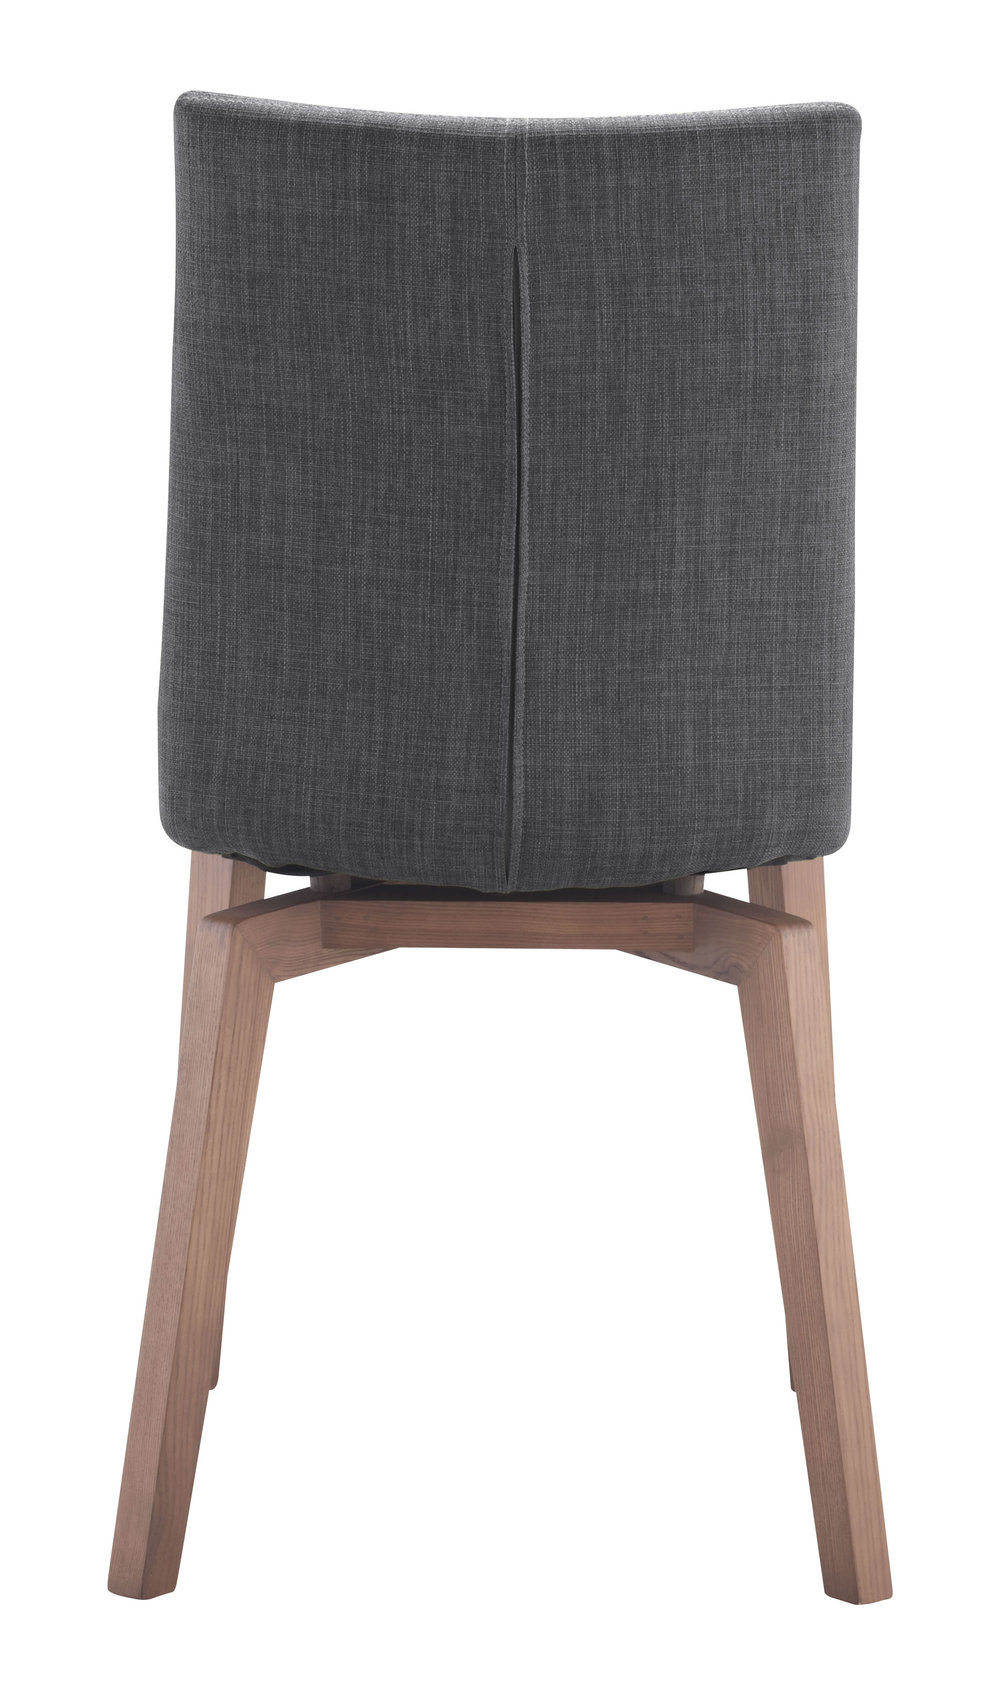 ZUO MODERN CONTEMPORARY, INC - Orebro Dining Chair - Set of 2 - Graphite